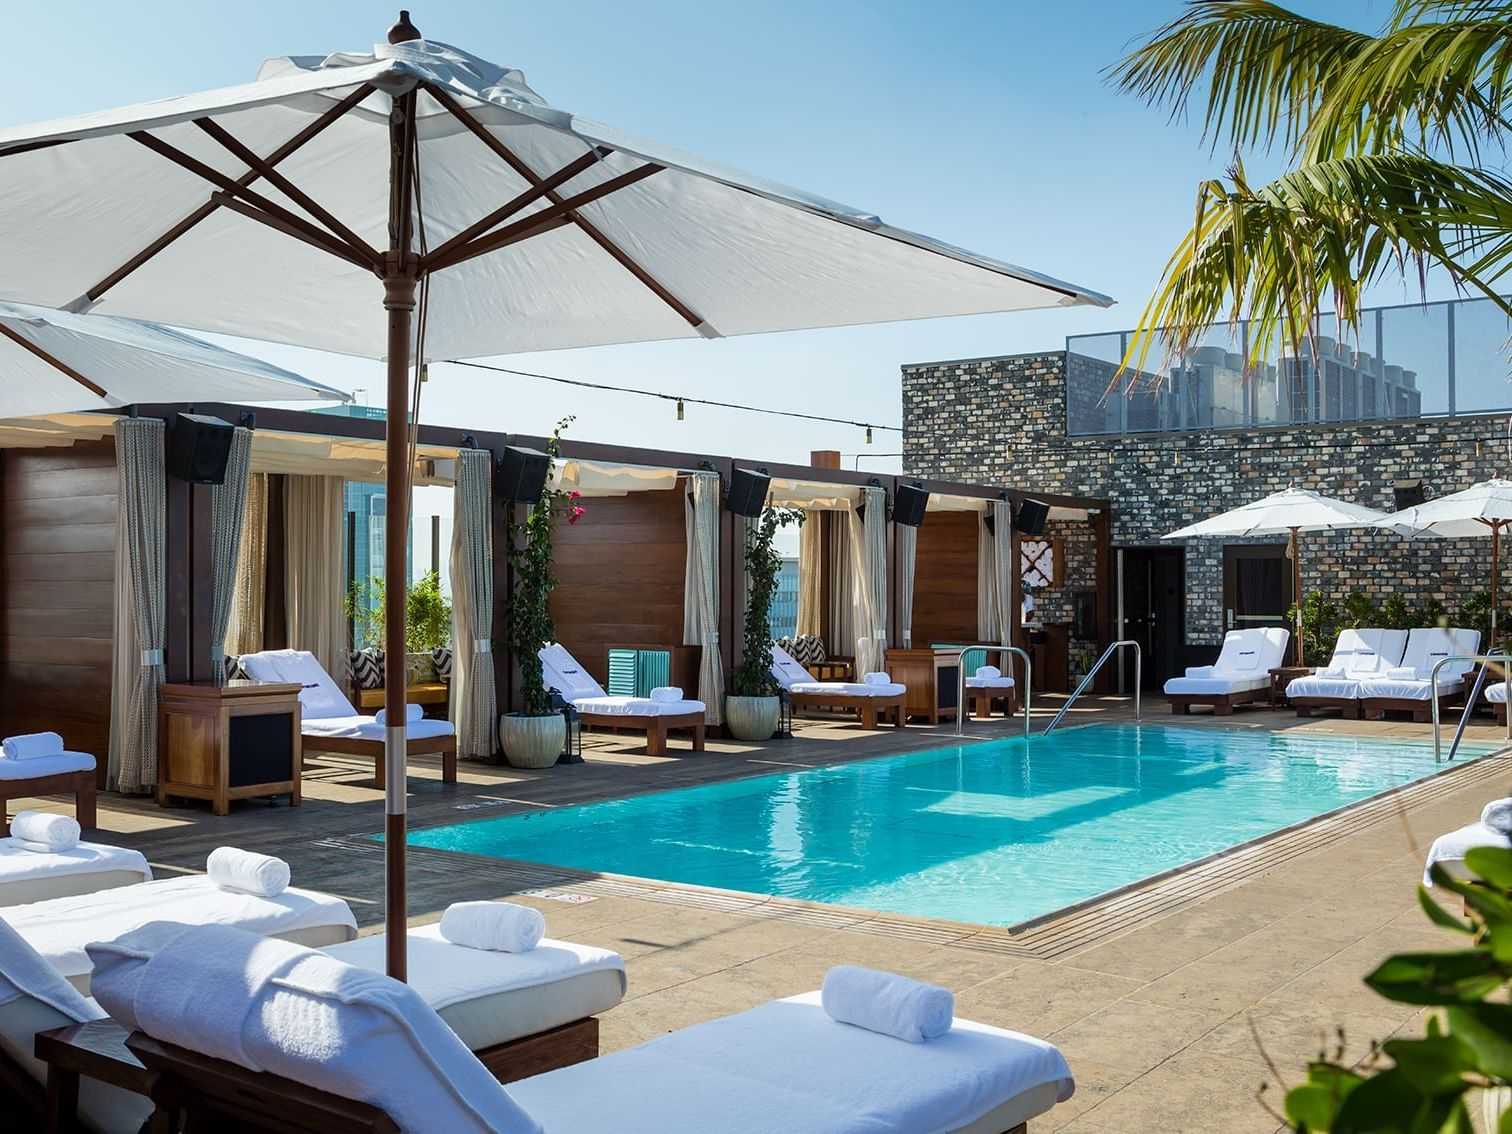 Rooftop pool with Cabanas & sunbeds at Dream Hollywood LA